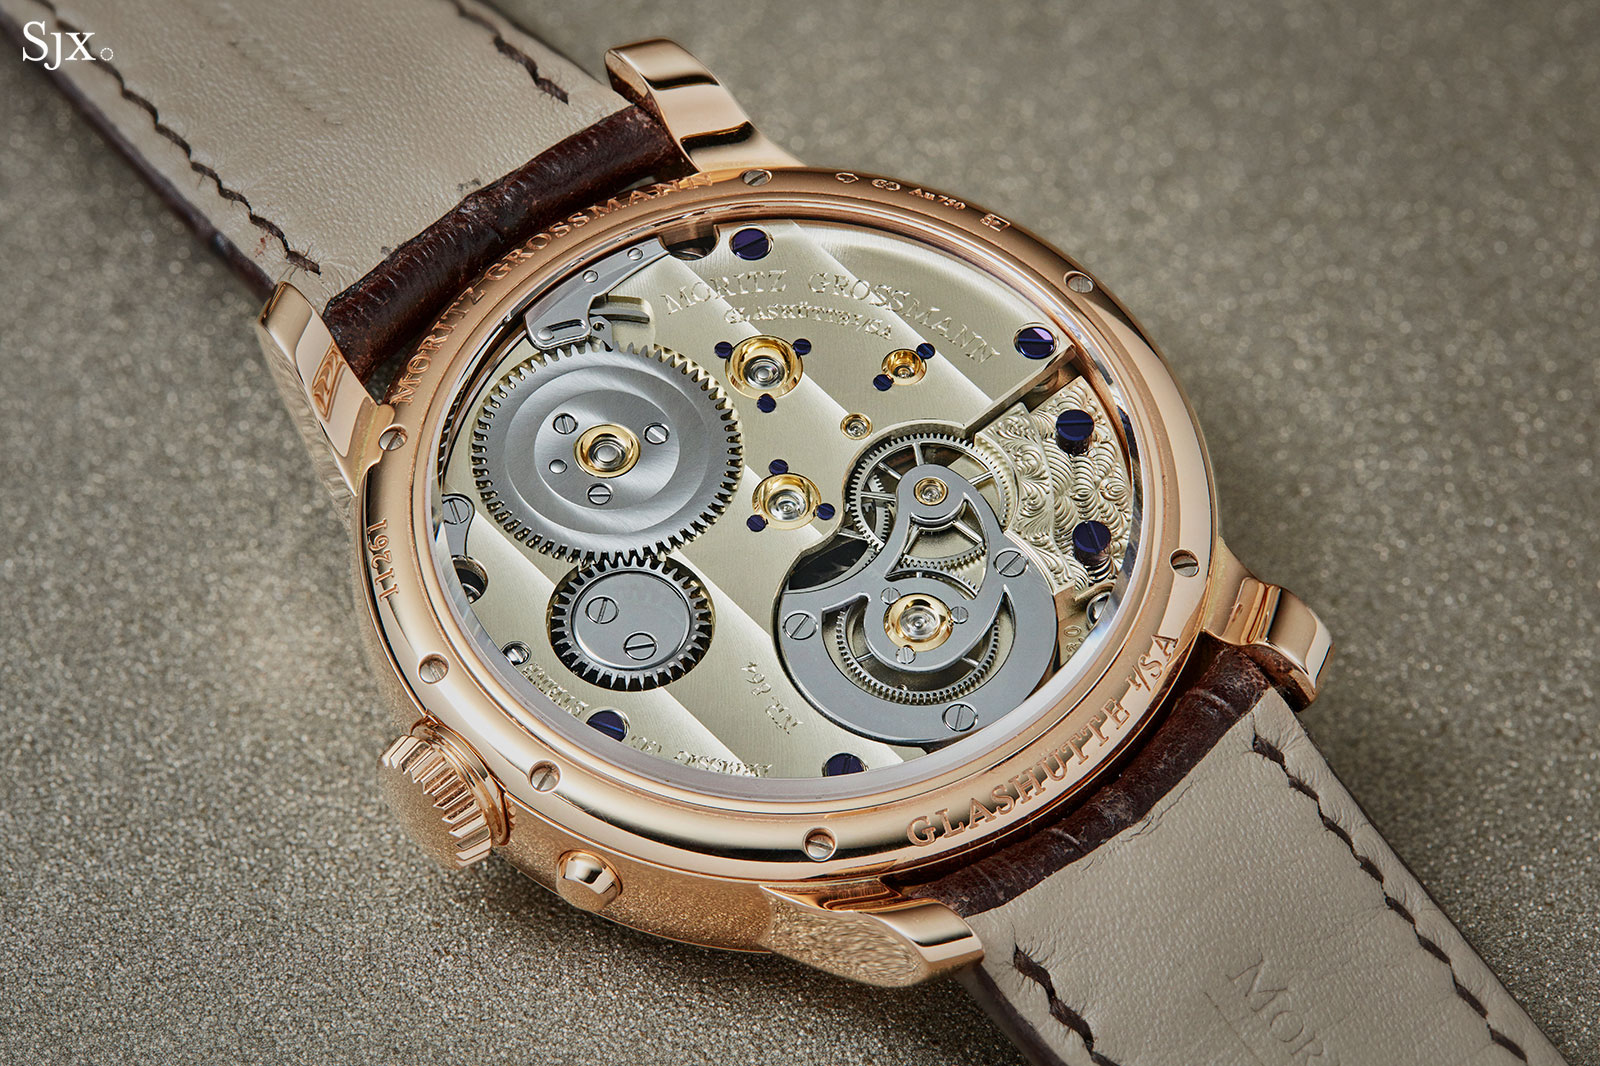 Moritz Grossmann Benu tourbillon rose gold 8